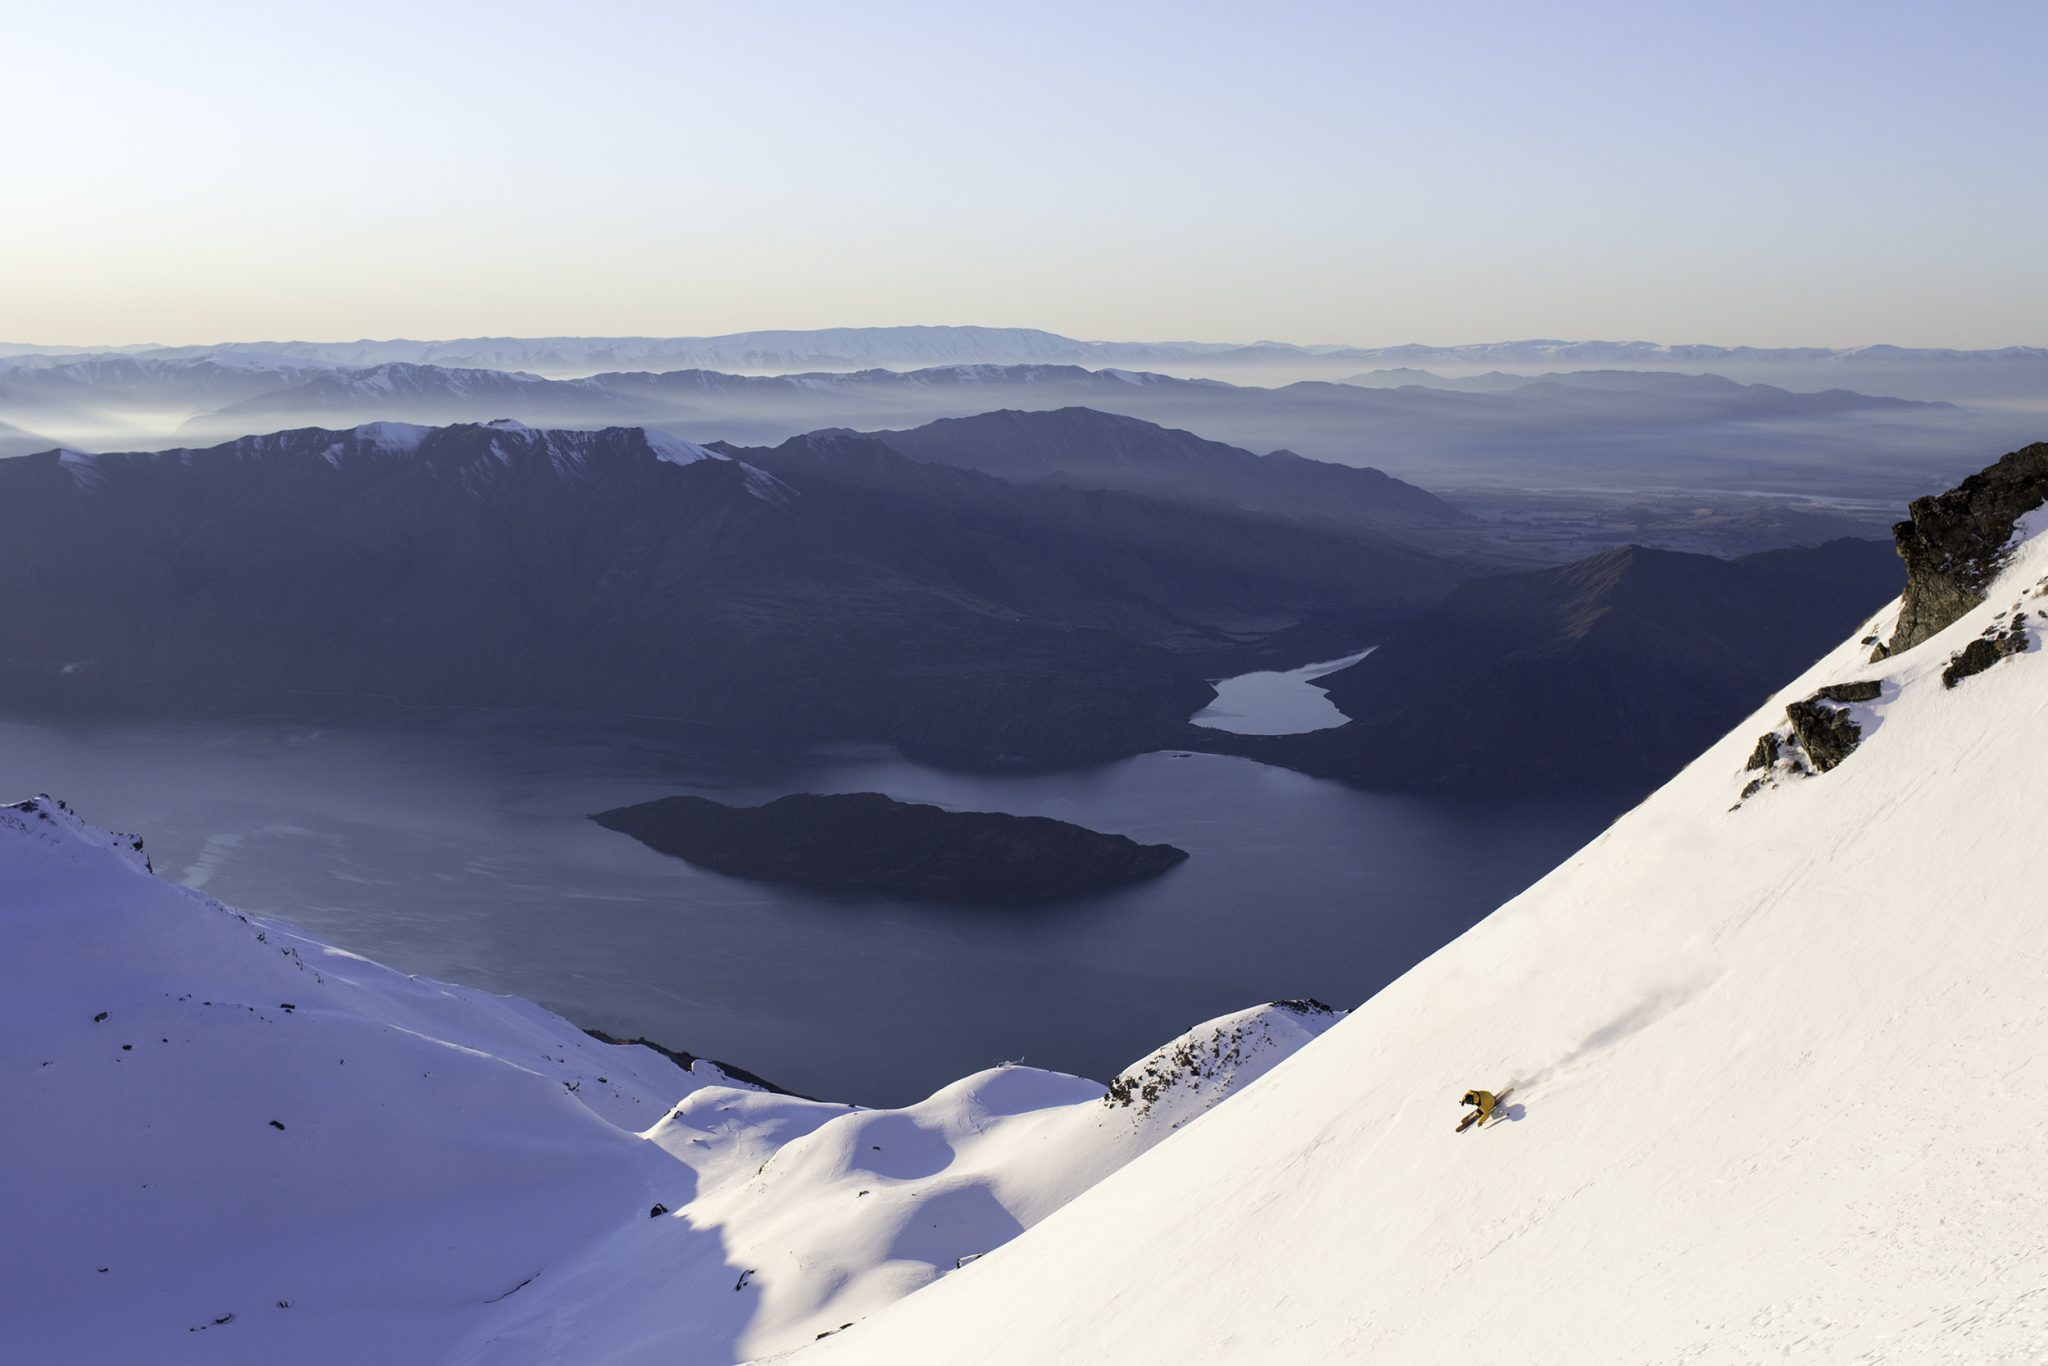 What a Wanaka view! Pic by Mark Clinton.